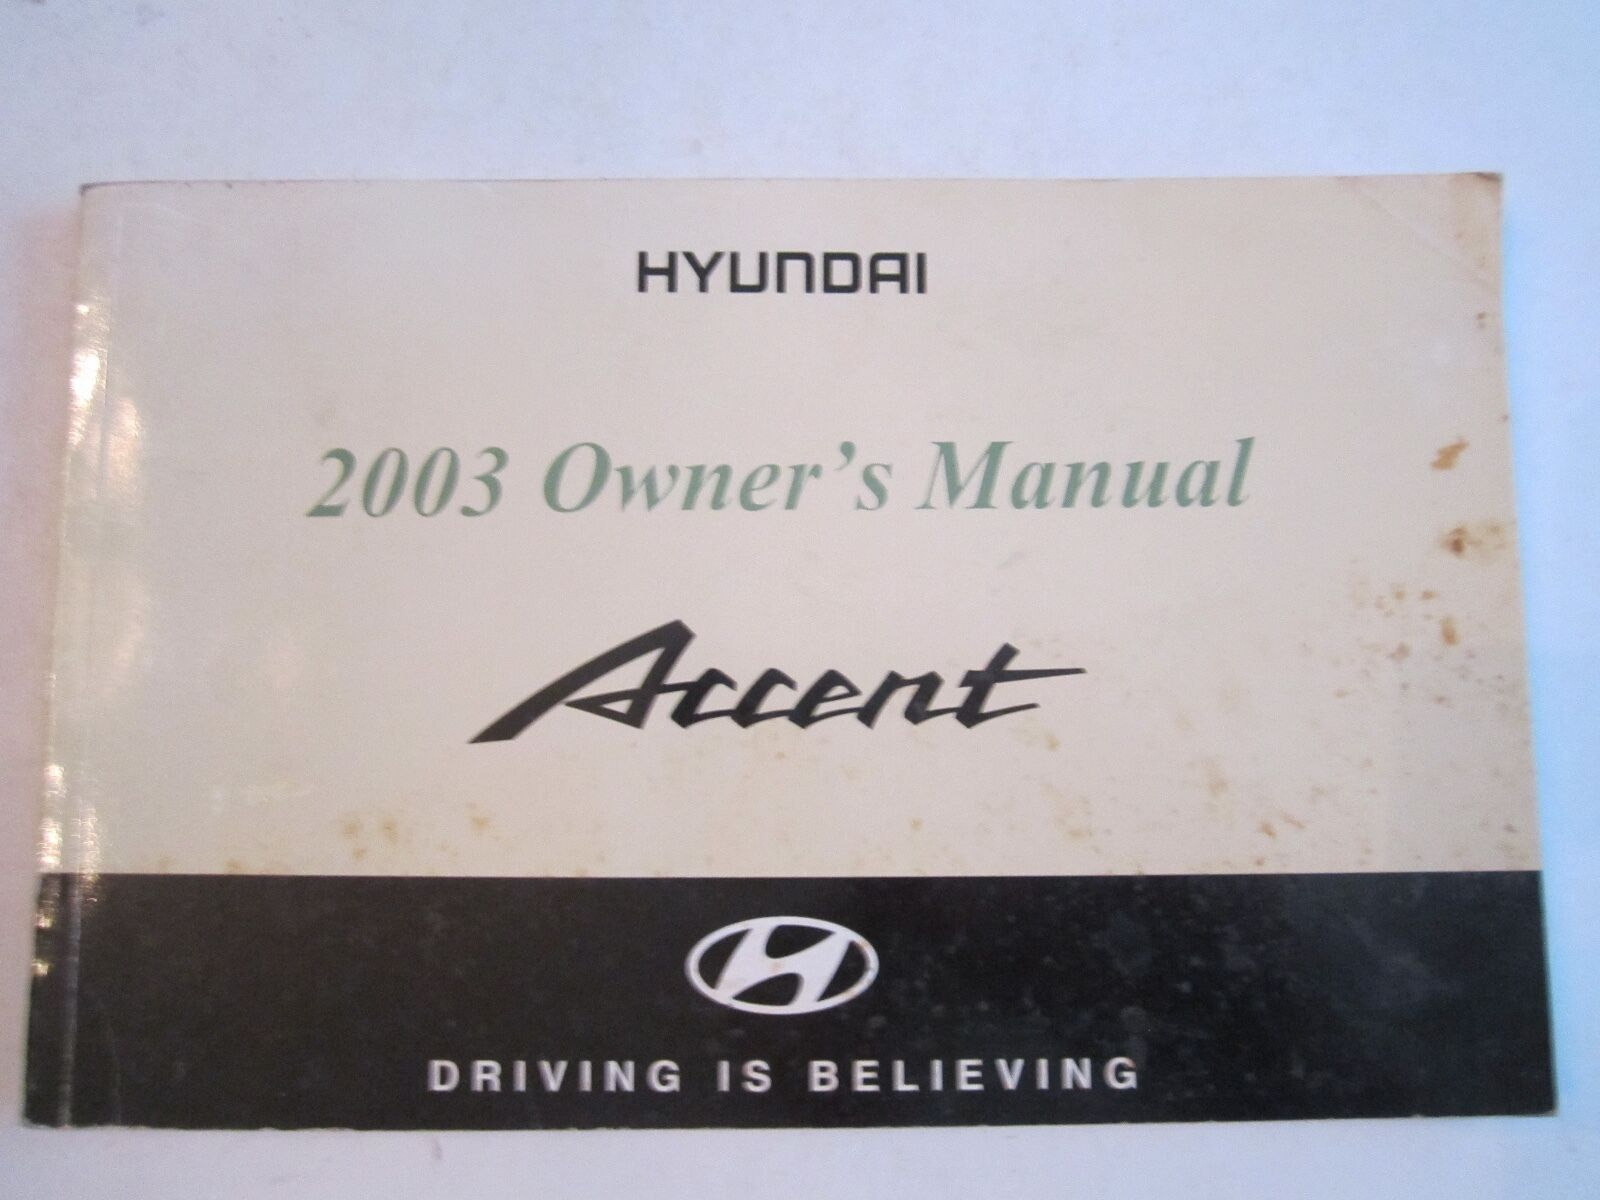 2003 Hyundai Accent Owner's Manual - Tub D 1 of 4Only 1 available ...